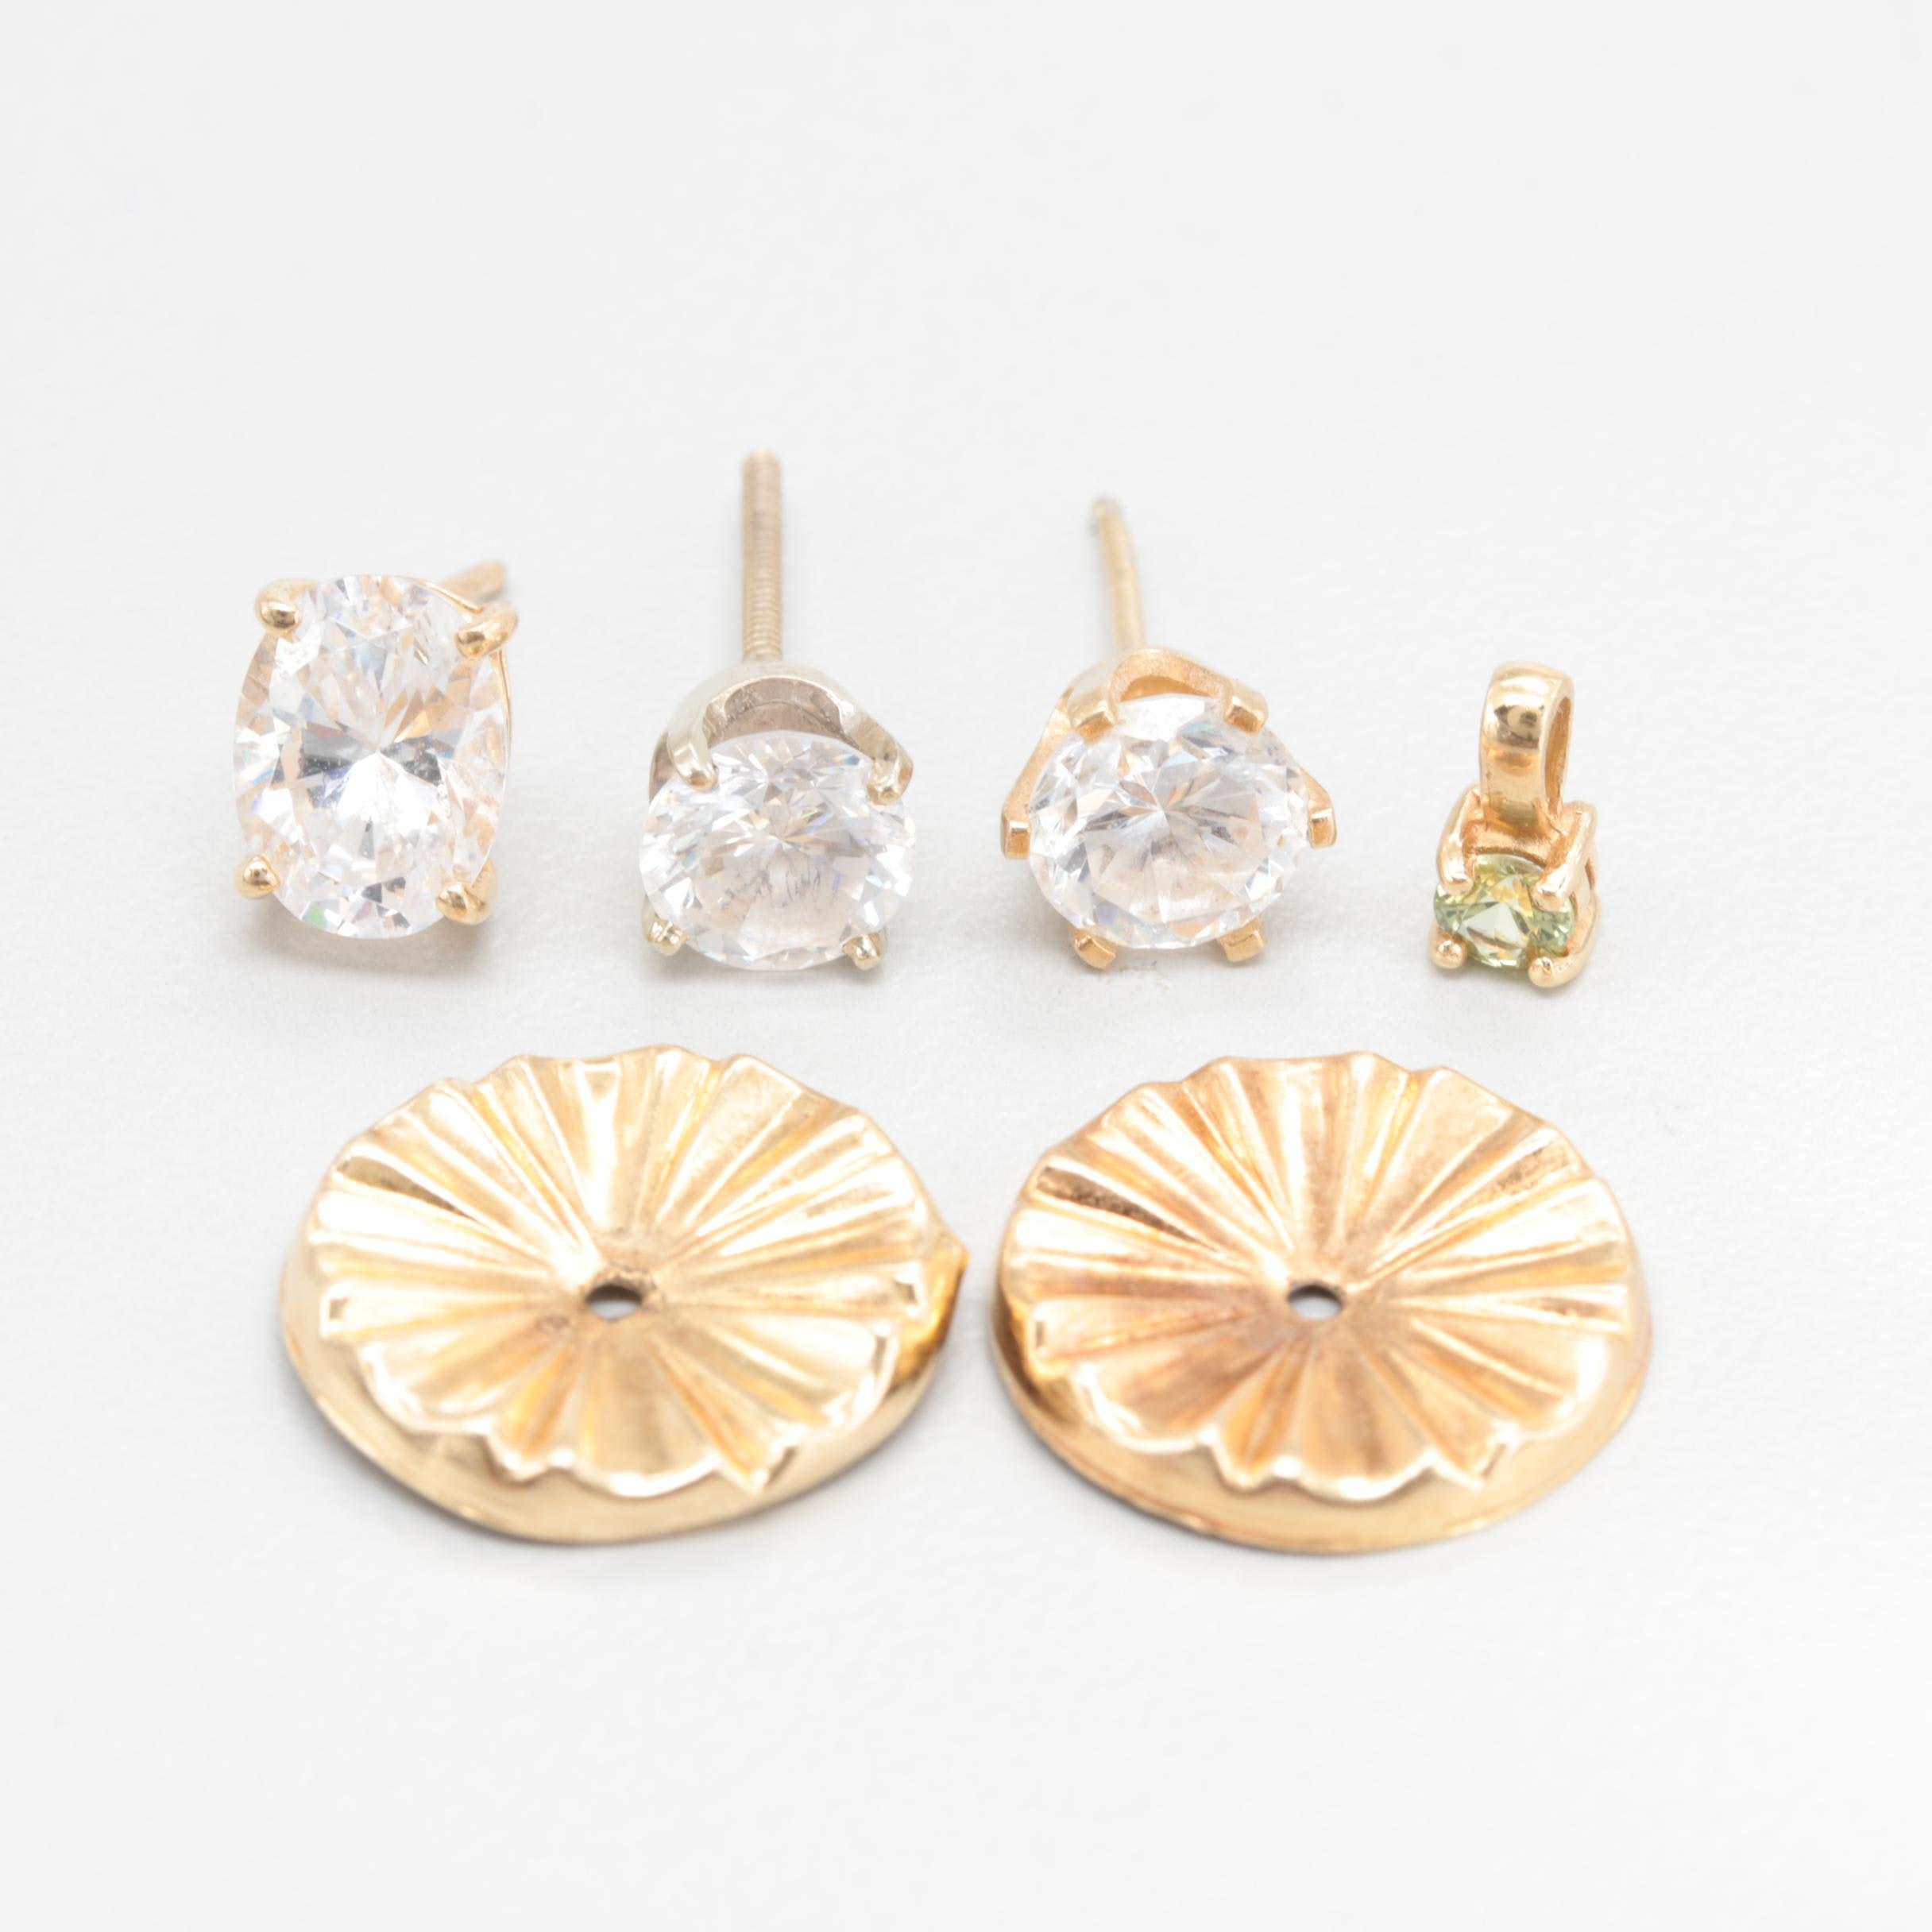 14K Yellow Gold Jewelry Assortment with Cubic Zirconia and Synthetic Spinel